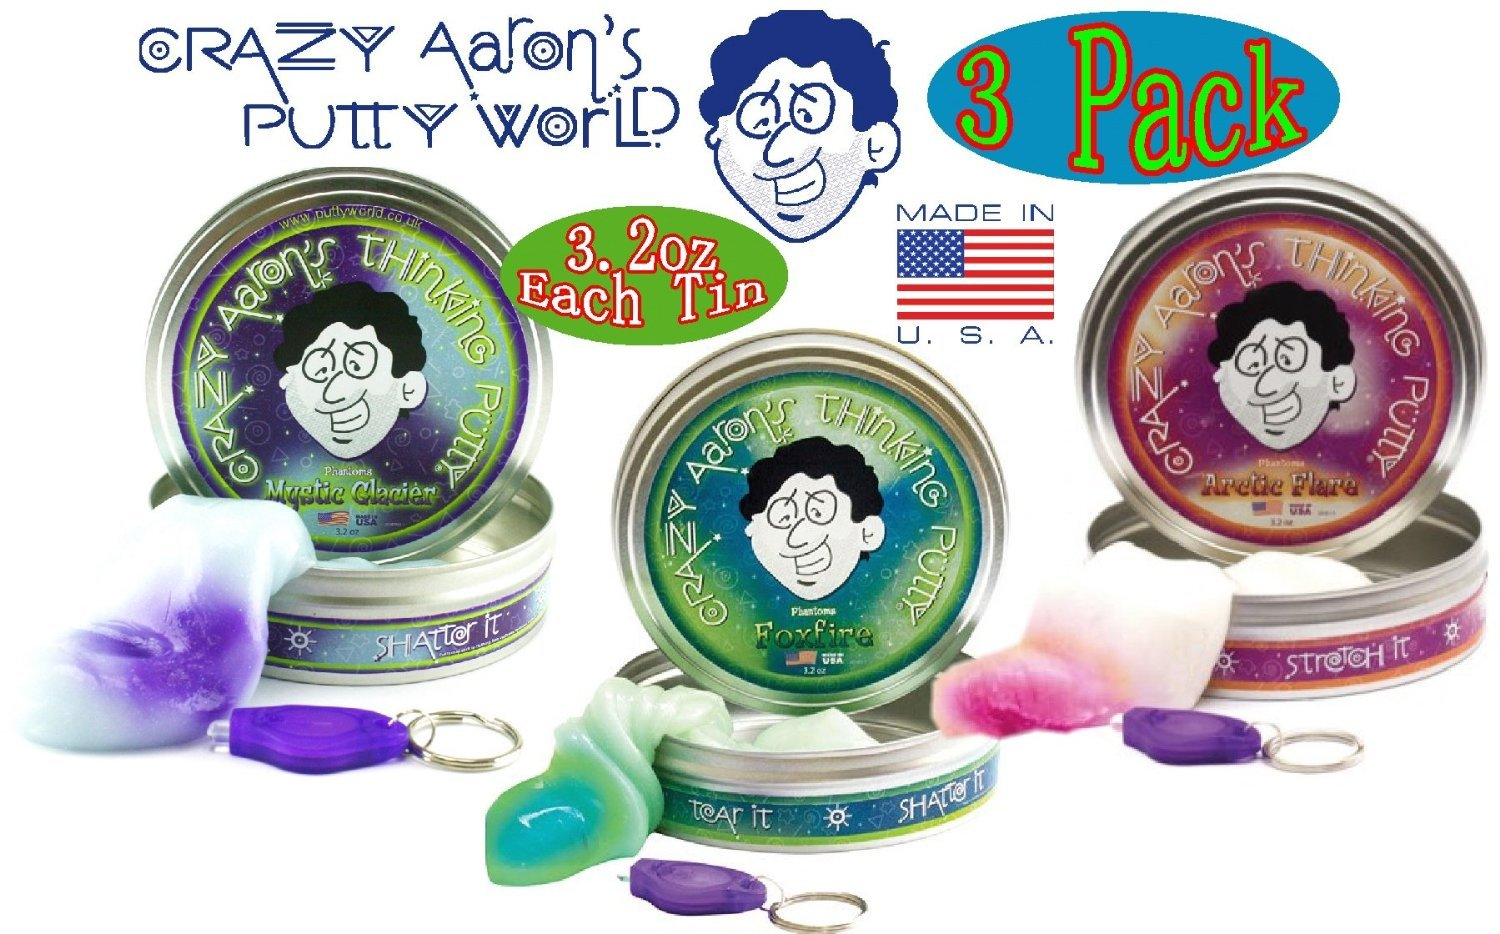 Crazy Aaron's Thinking Putty Phantoms (UV Reactive) Mystic Glacier, Foxfire & Arctic Flare with Blacklight Keychains Gift Set Bundle - 3 Pack